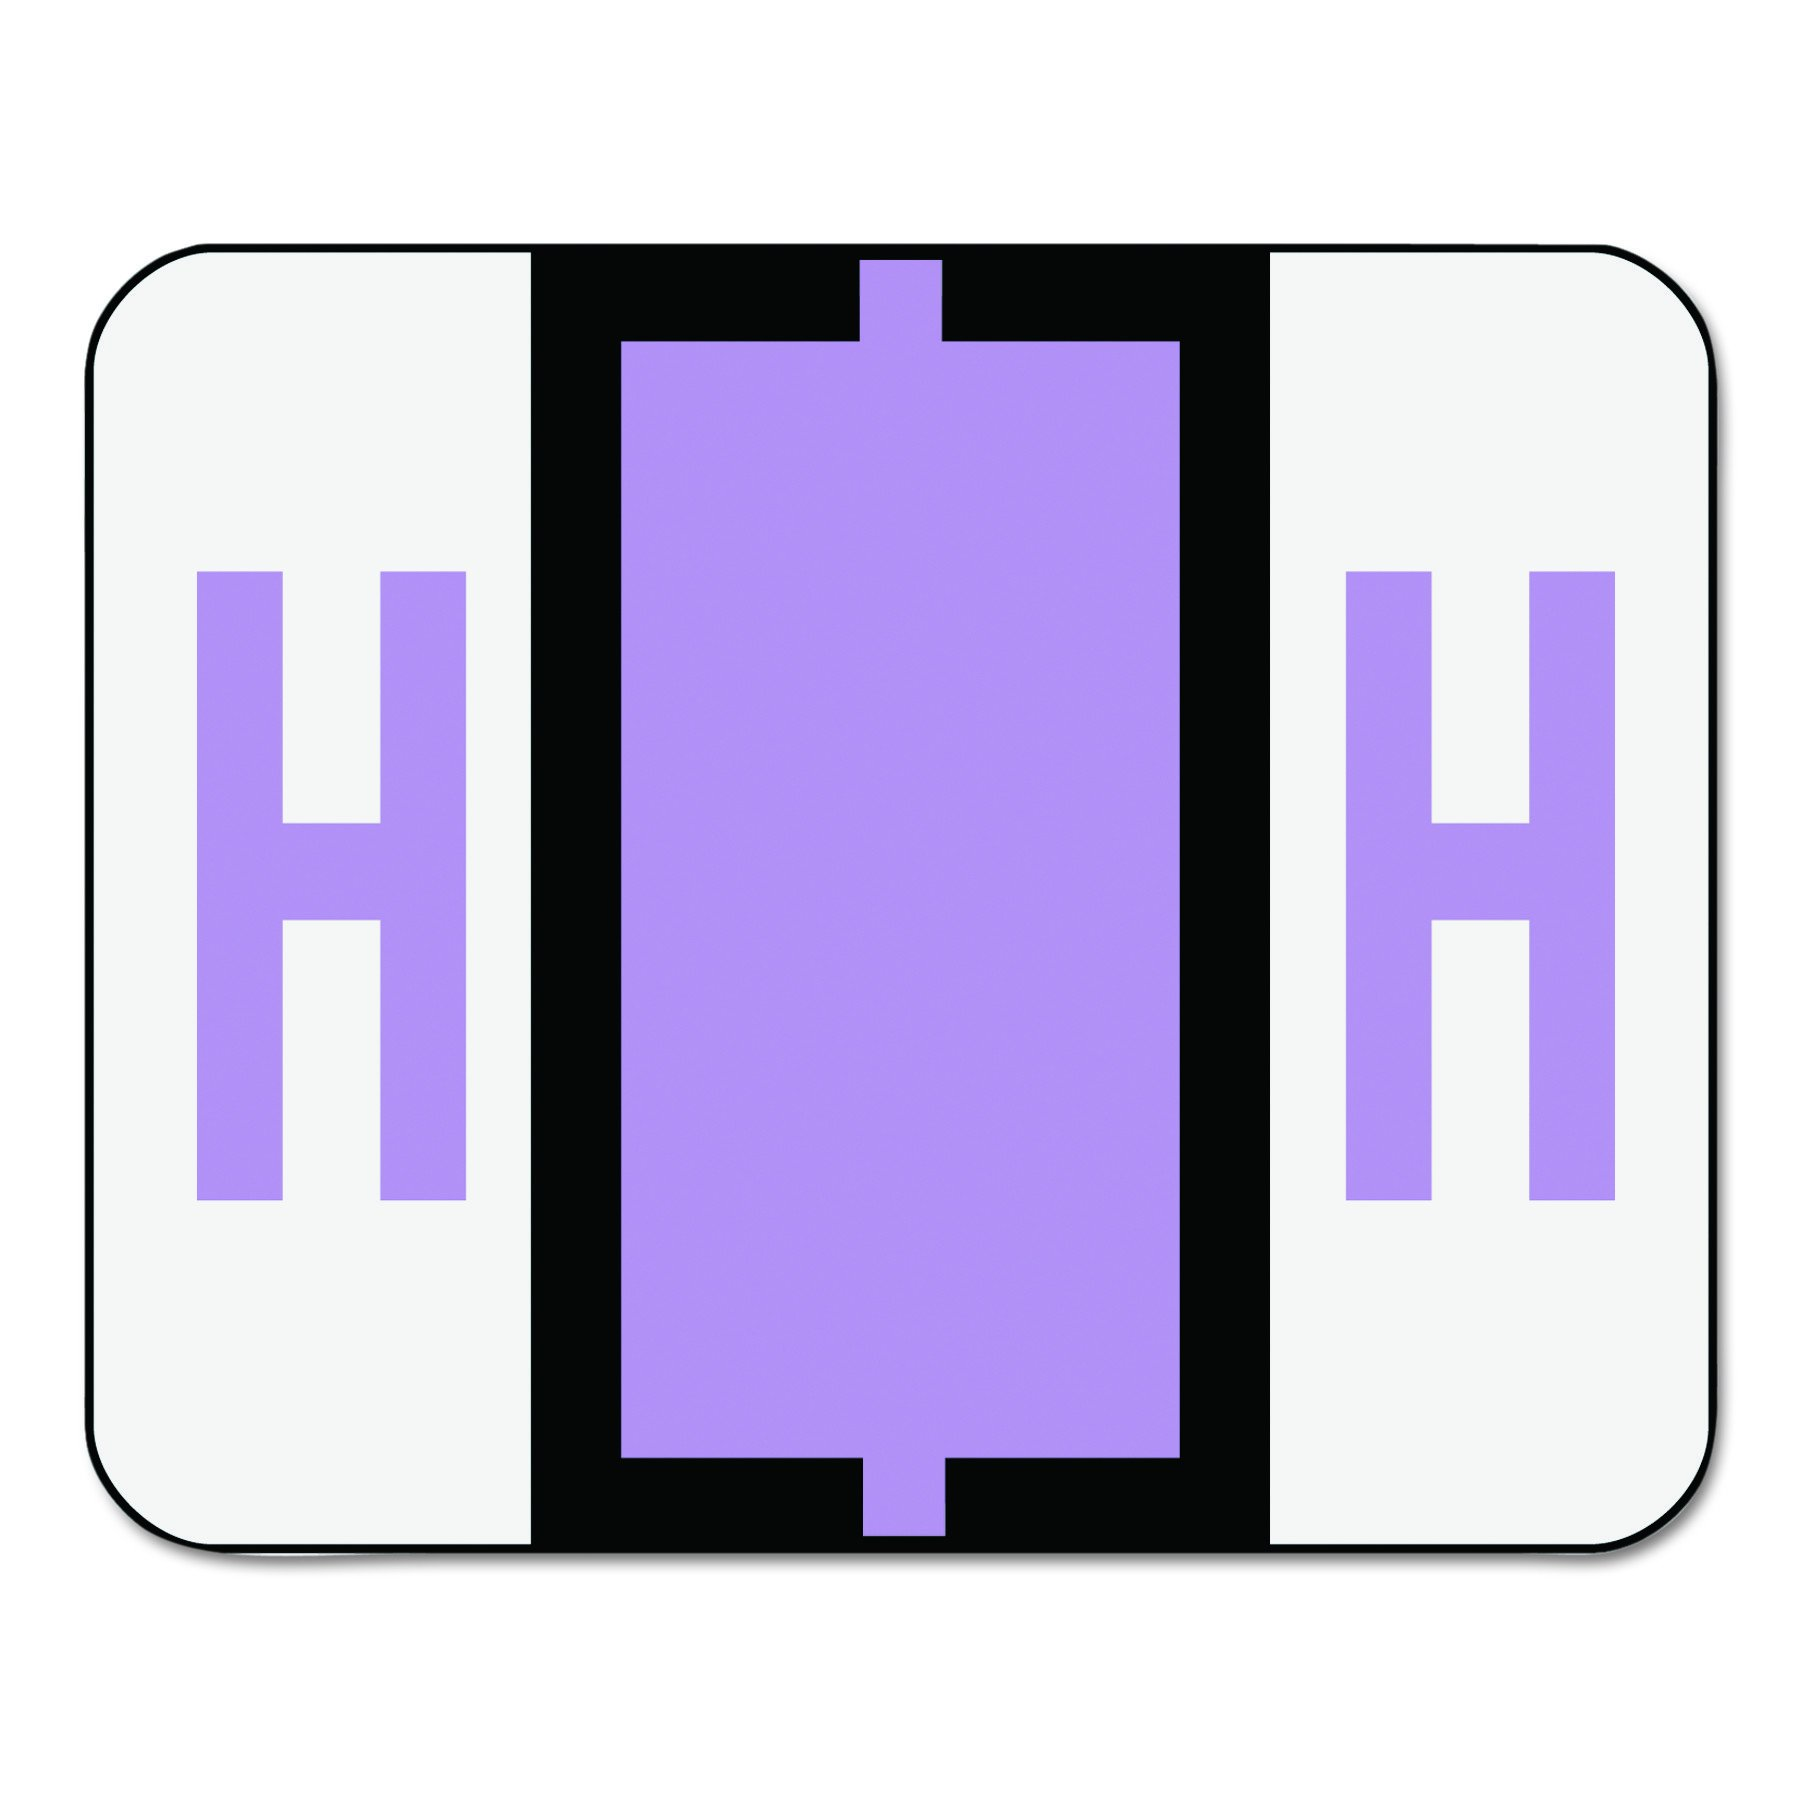 Smead 67078 A-Z Color-Coded Bar-Style End Tab Labels, Letter H, Lavender, 500 per Roll